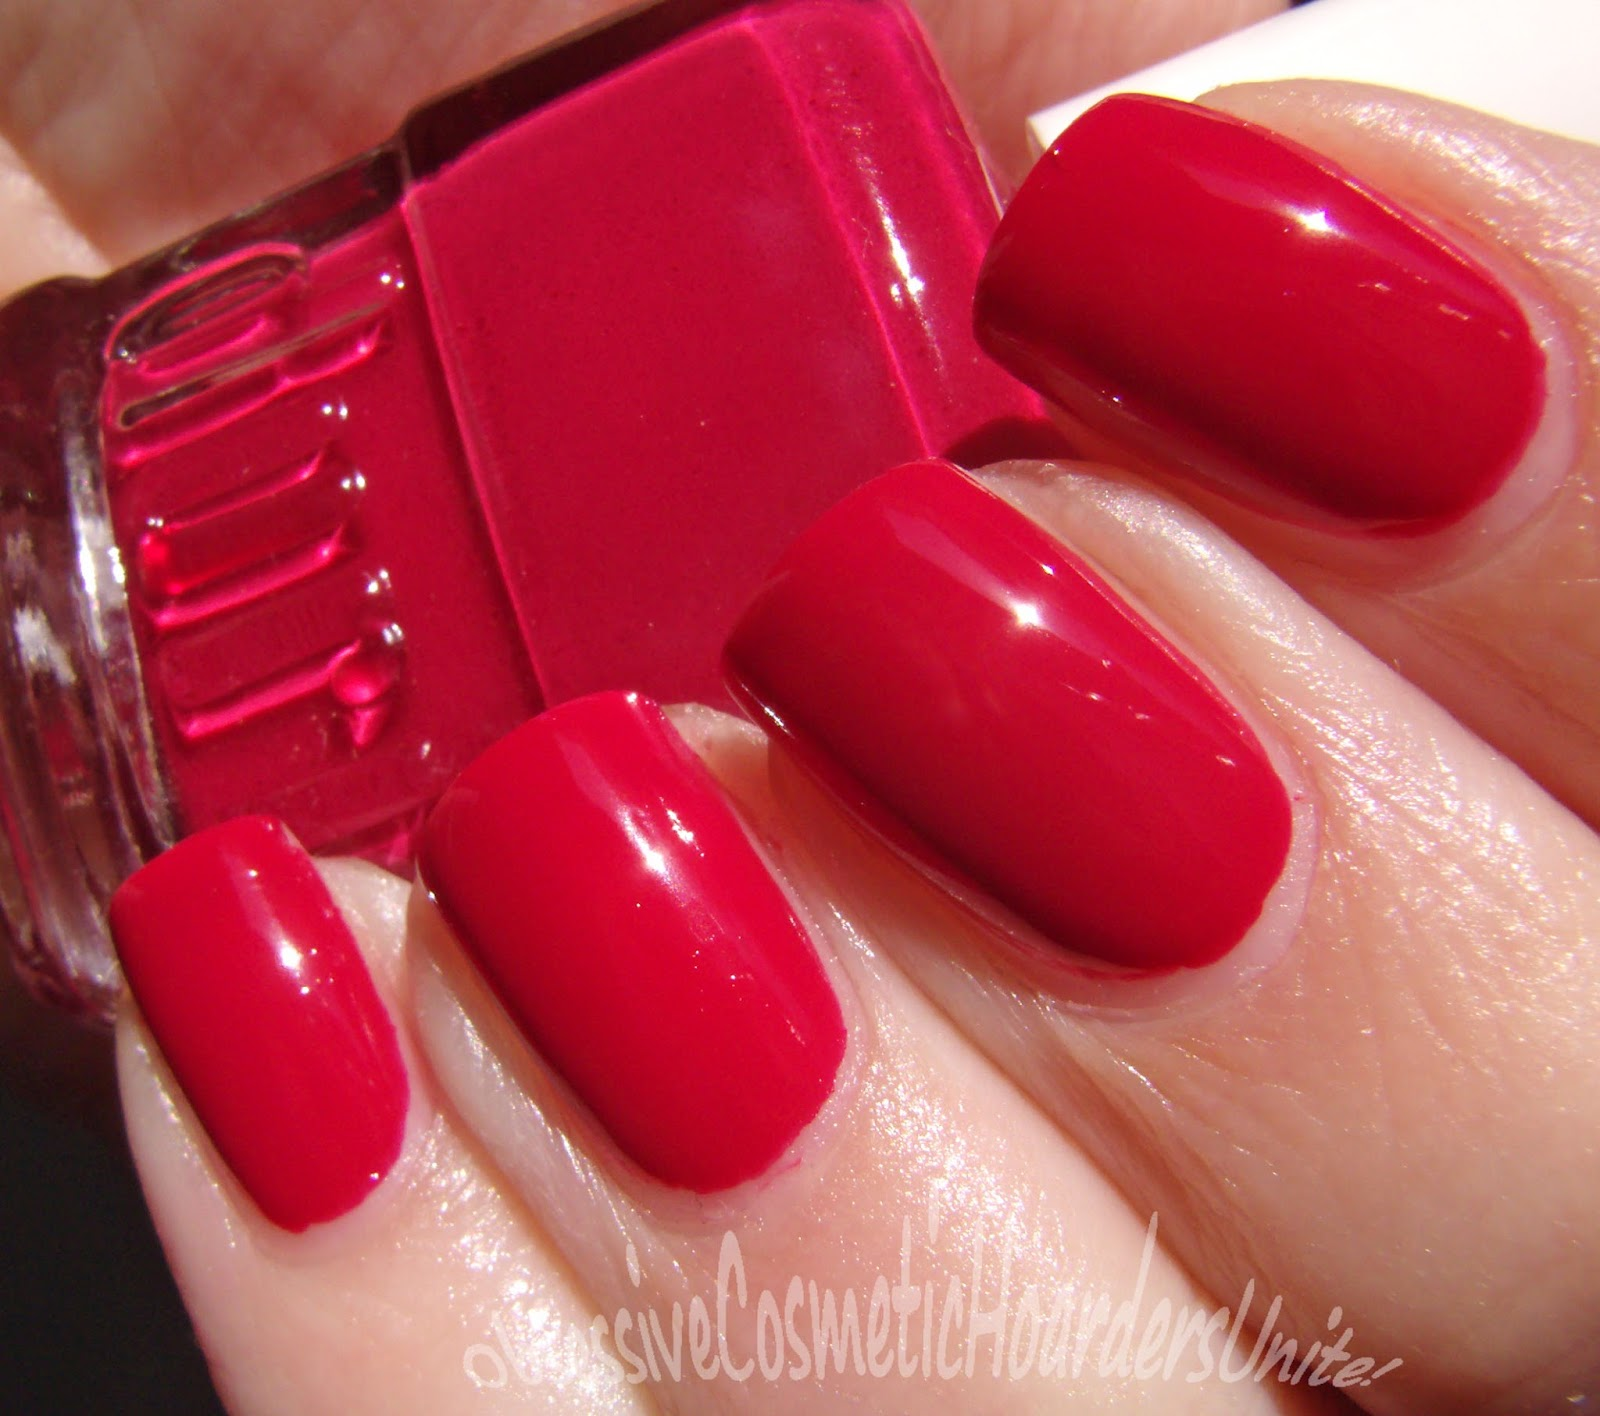 Hot Pink Jelly Nail Polish - To Bend Light